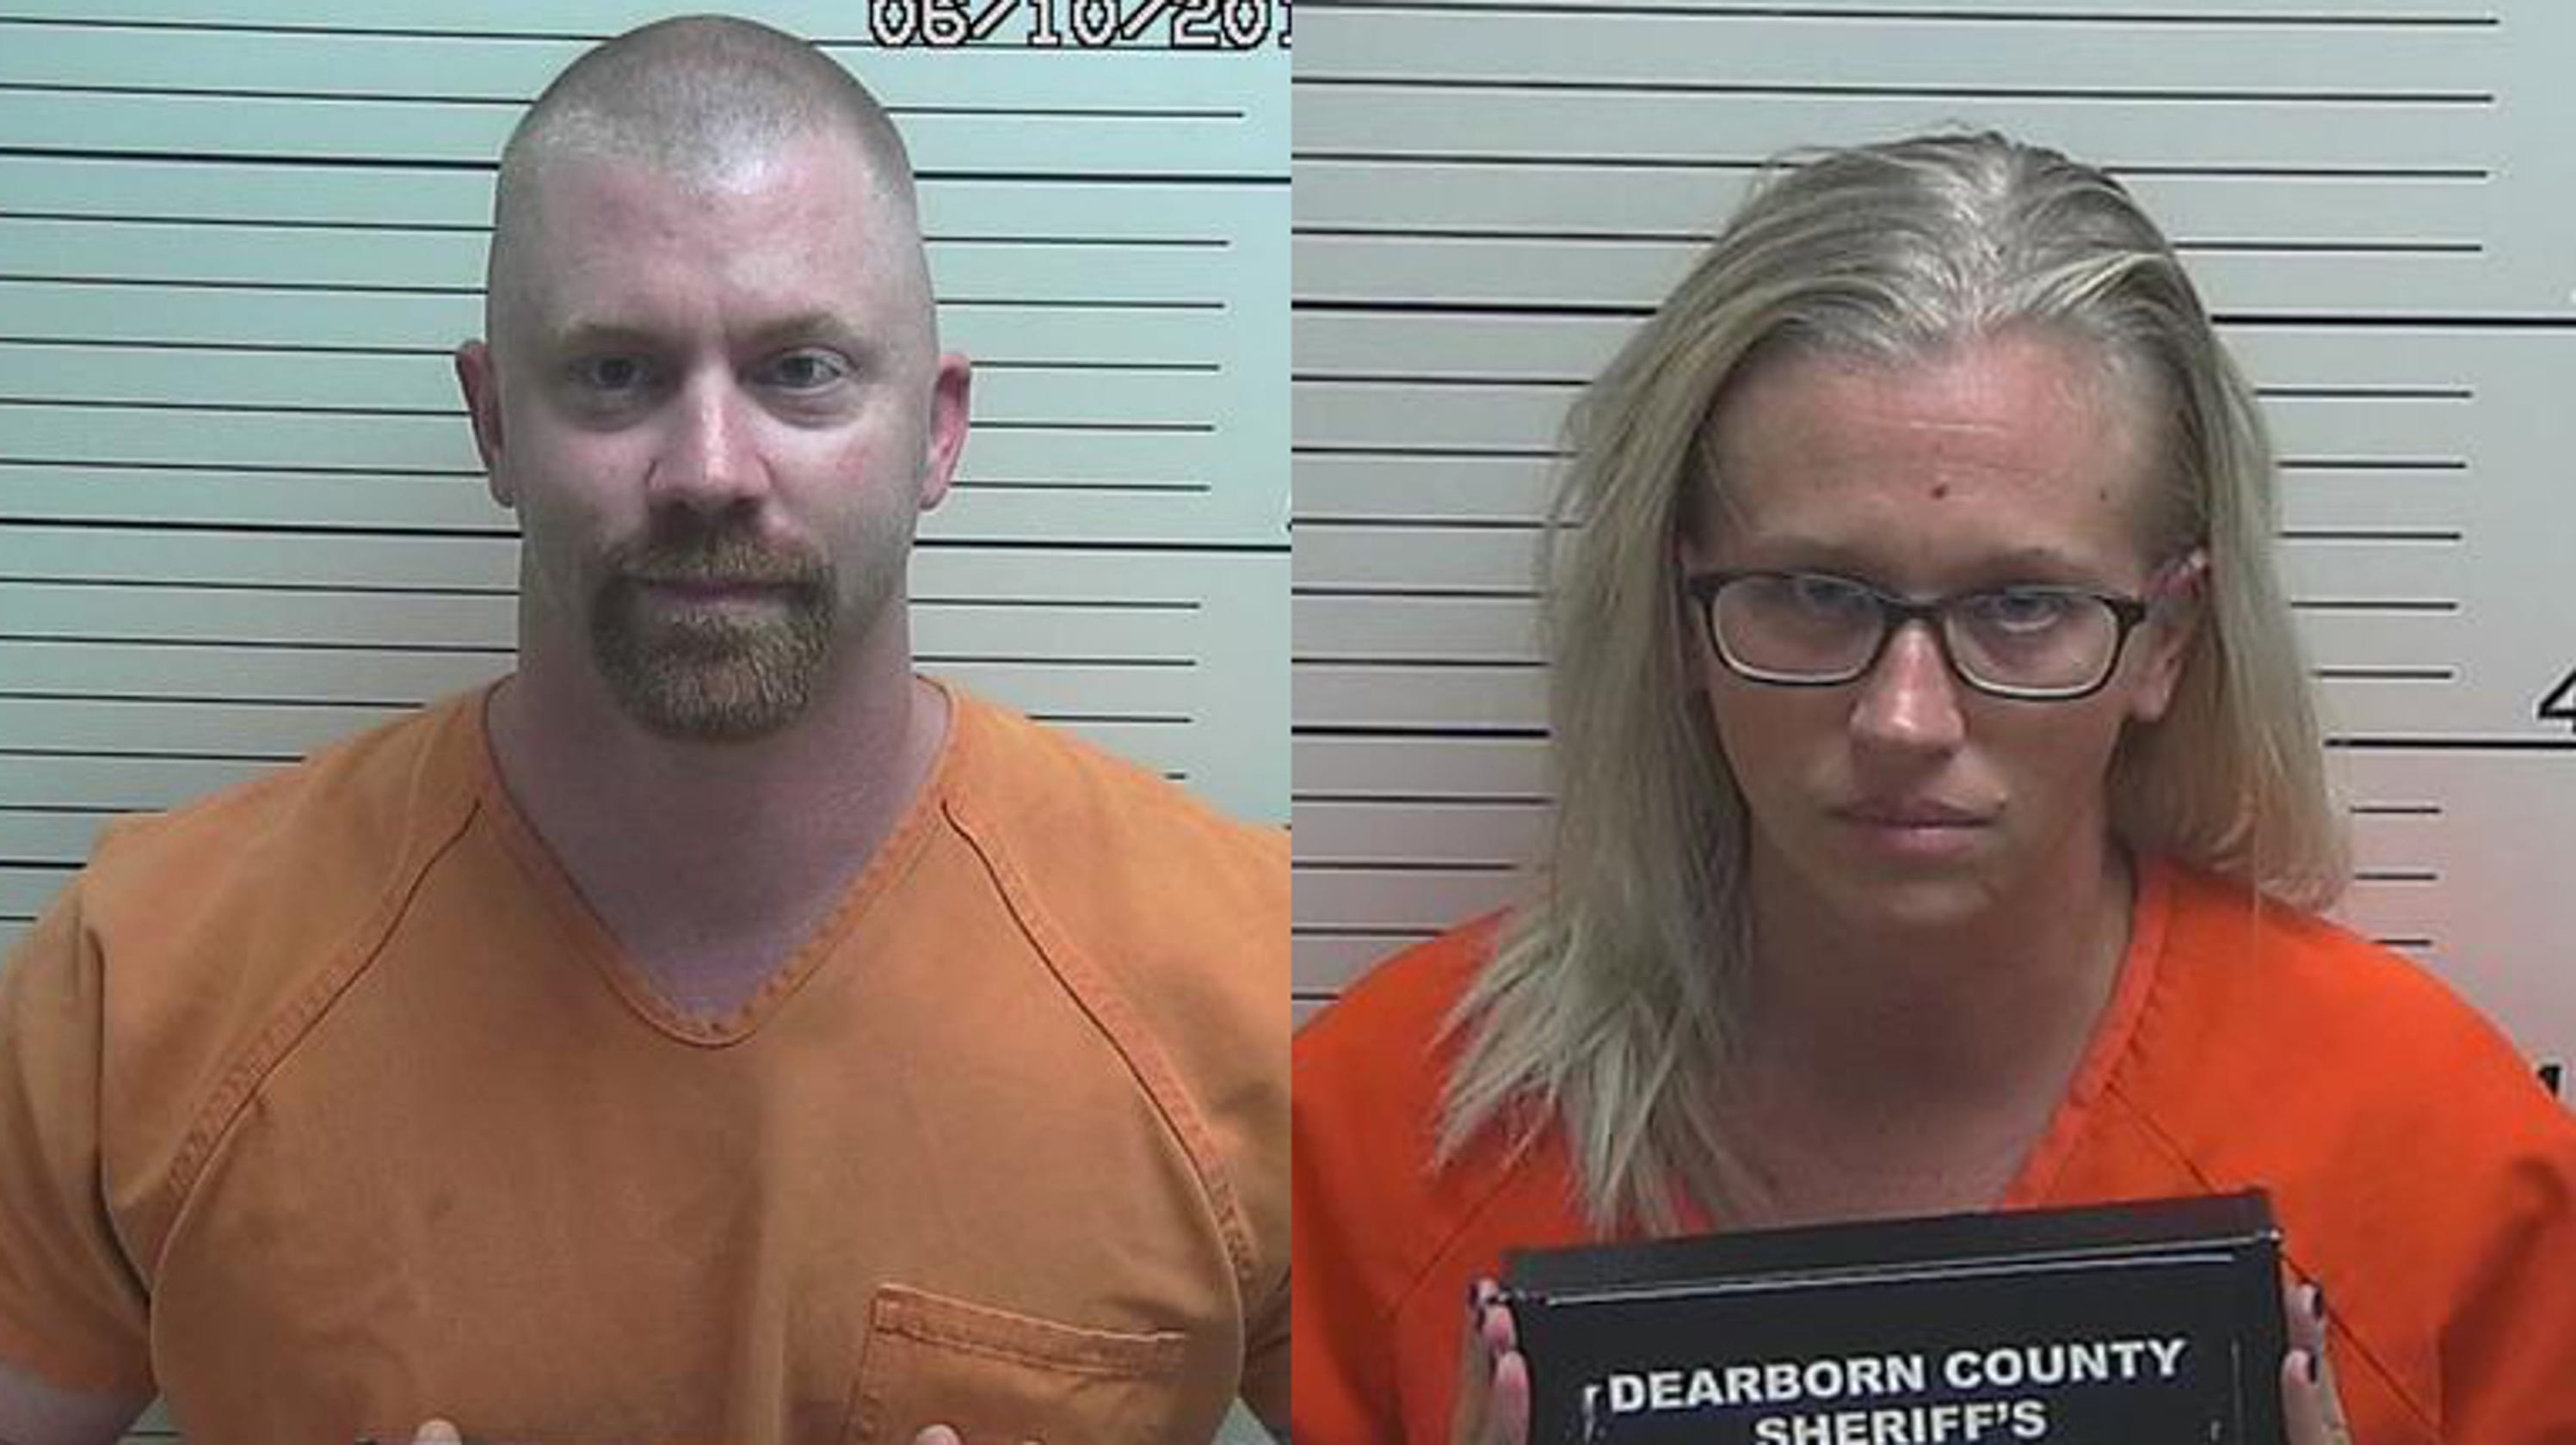 Police: Couple made steroids in secret room in Hidden Valley home